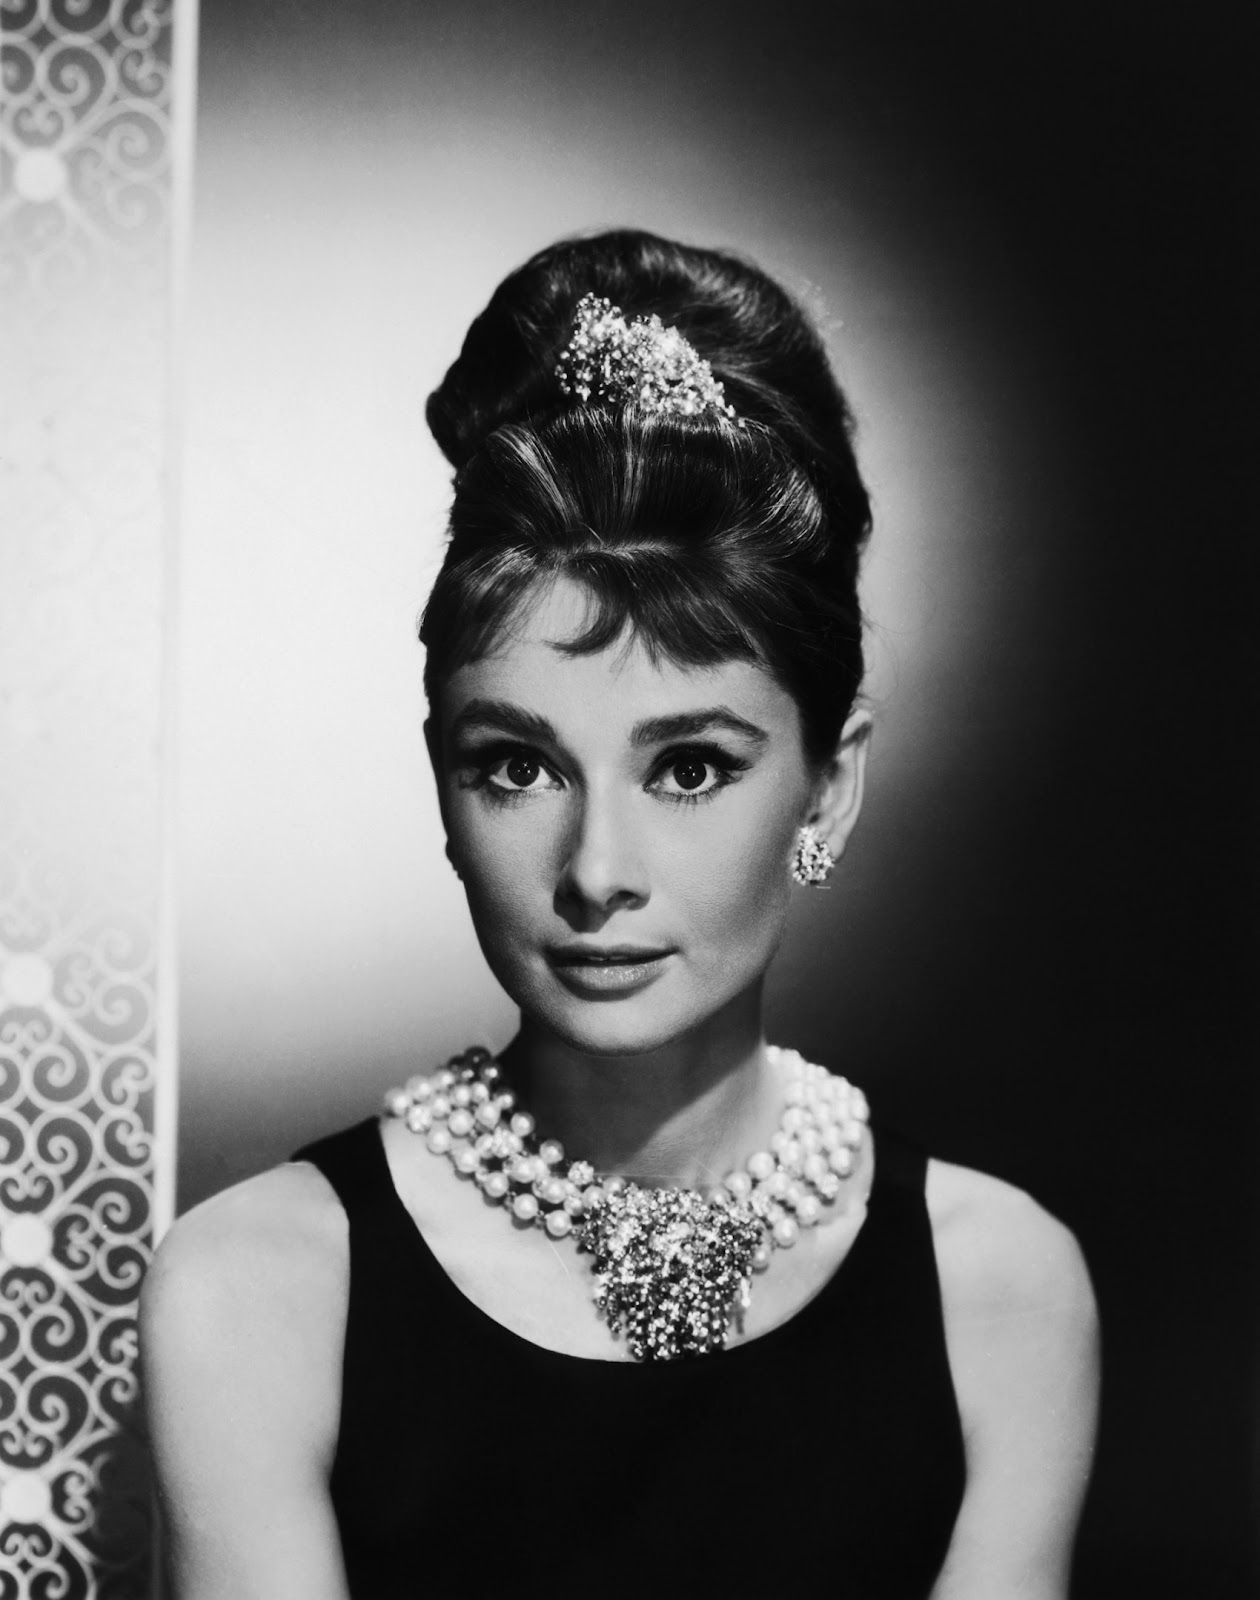 Mouvement Introductif: Breakfast at Tiffany's